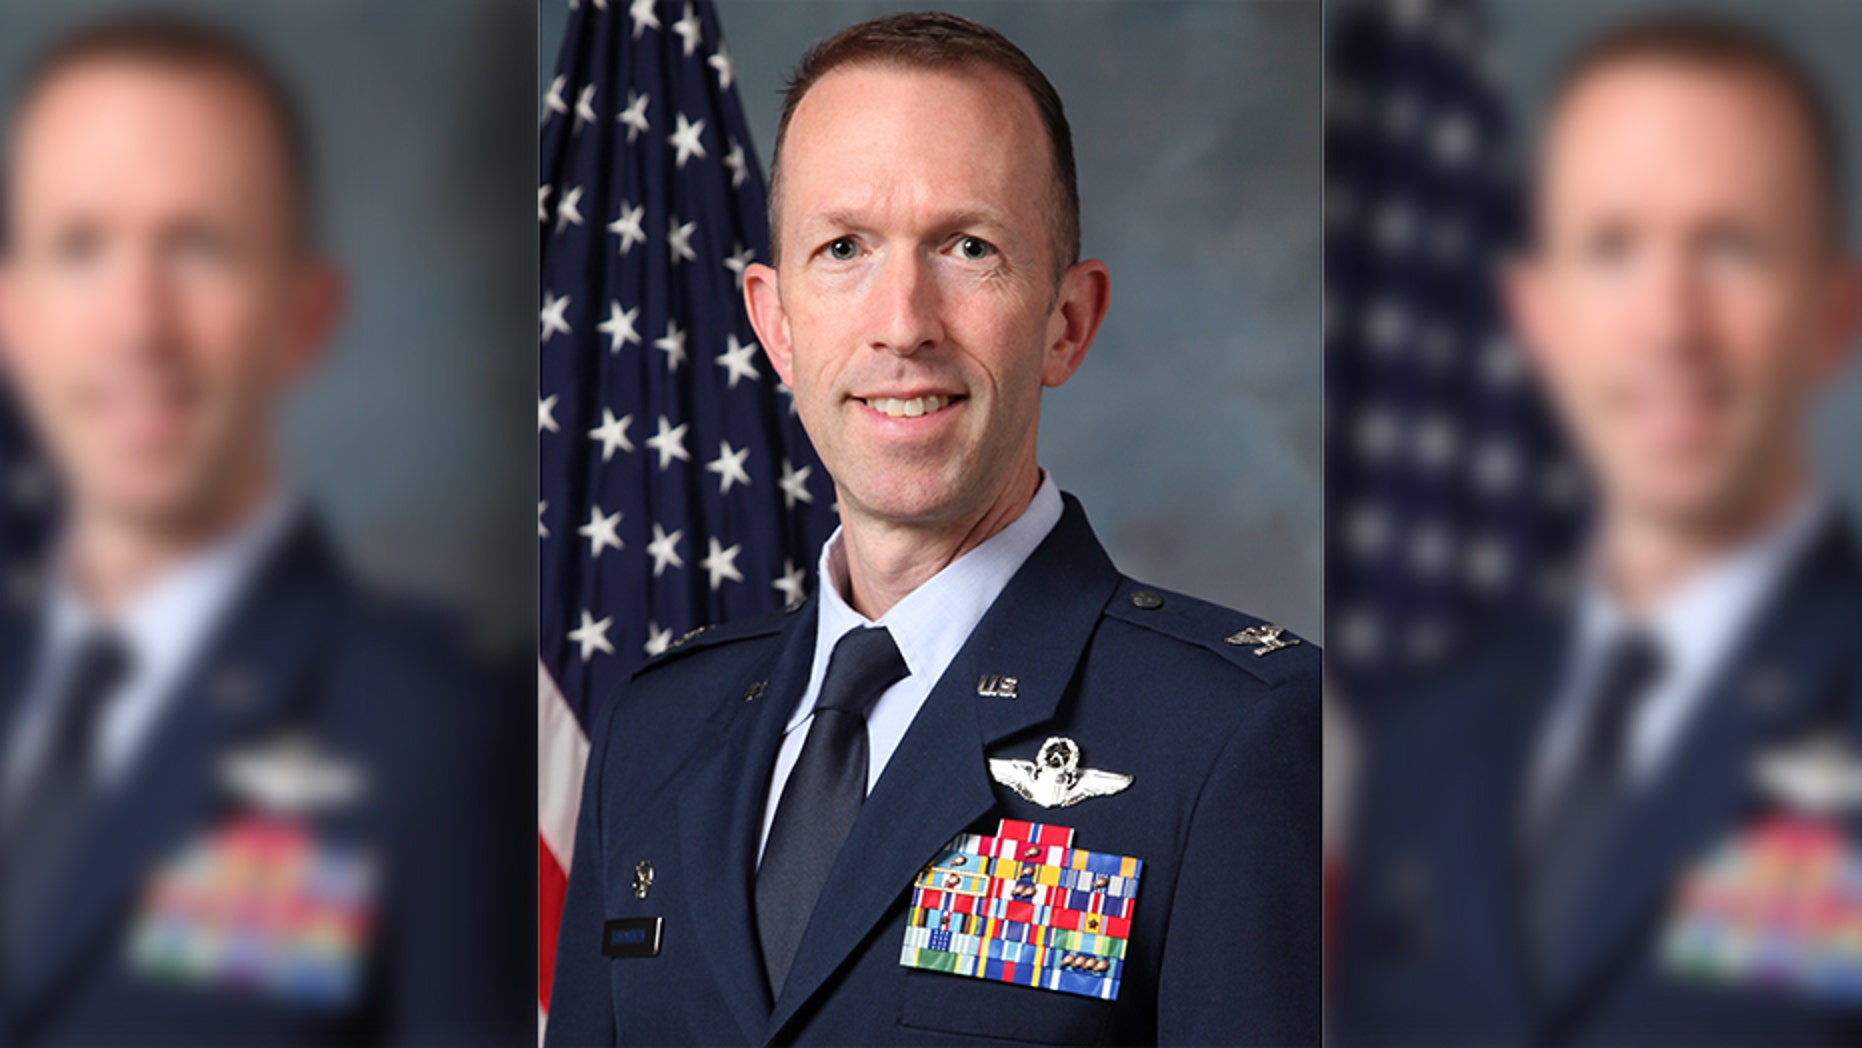 The Air Force has reversed its decision to punish Col. Leland Bohannon, seen here, after he refused to publicly affirm the same-sex spouse of a retiring subordinate.